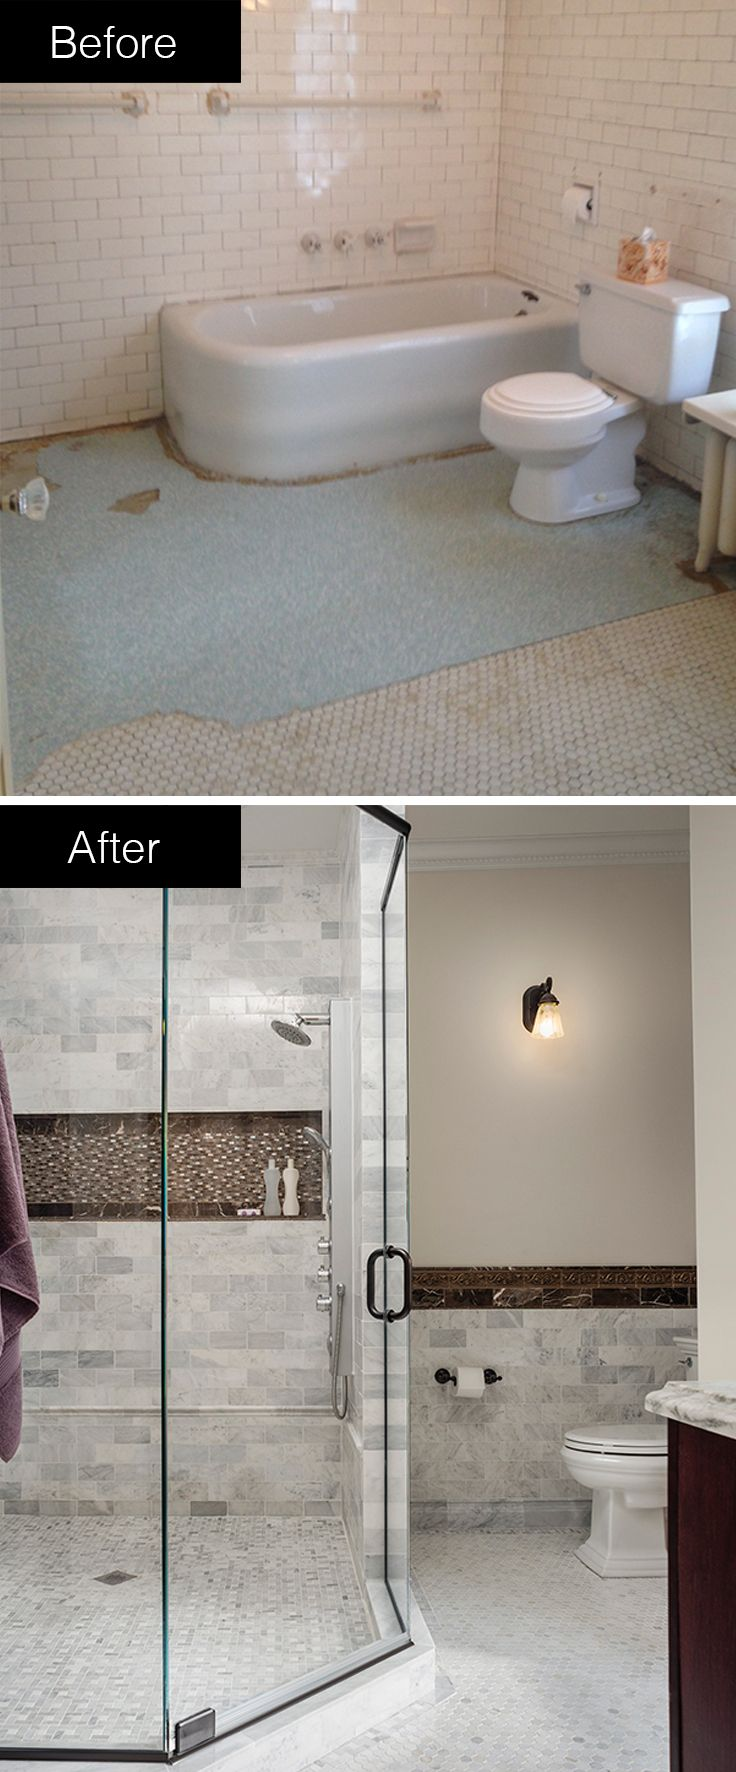 A Spacious Shower And Sleek Tile Work Transform This Bathroom Into A - Bathroom remodeling butler pa